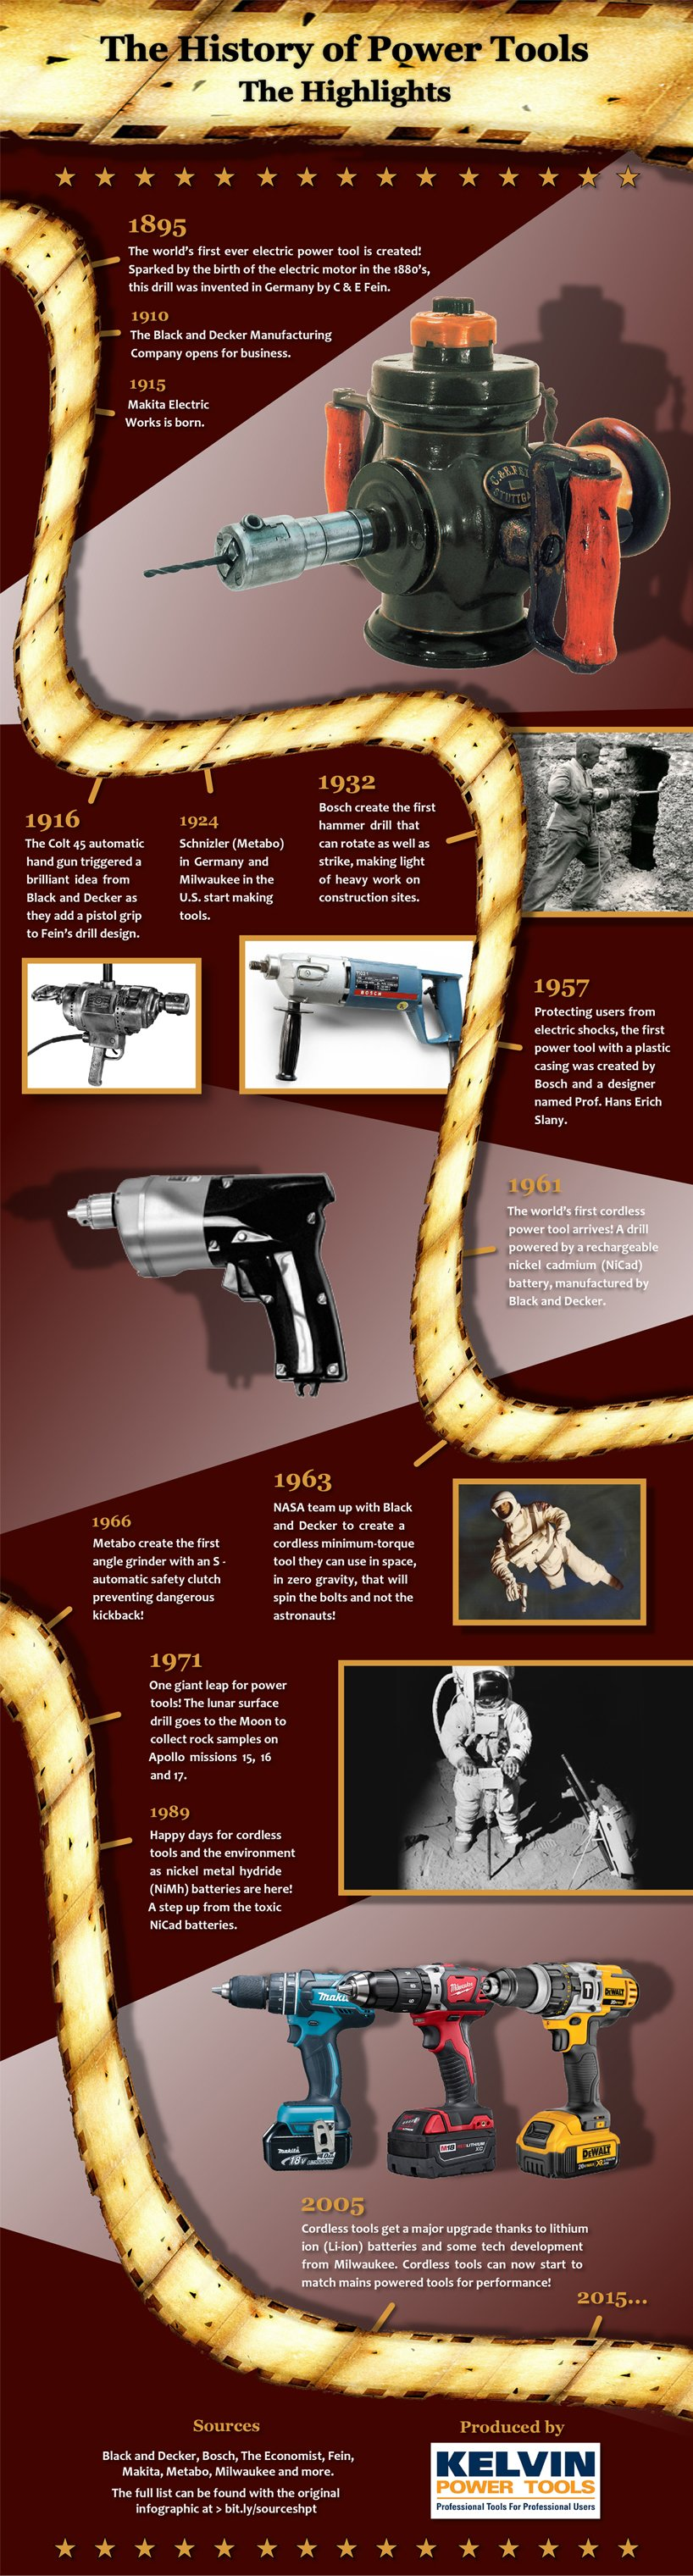 Power Tools History Infographic